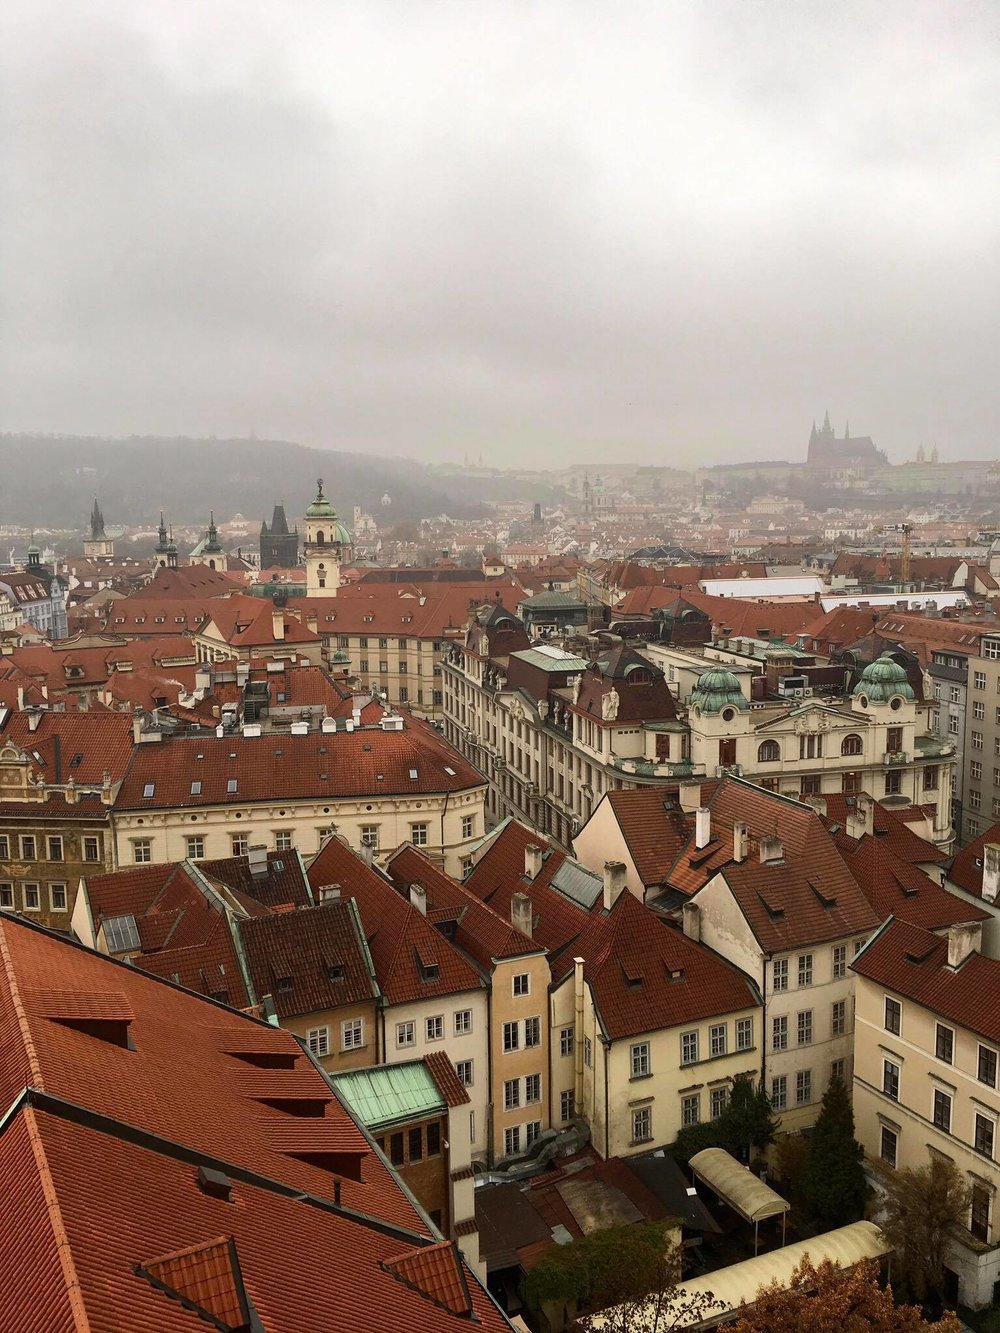 Old town, with an outline of the Prague Castle in the foggy distance.